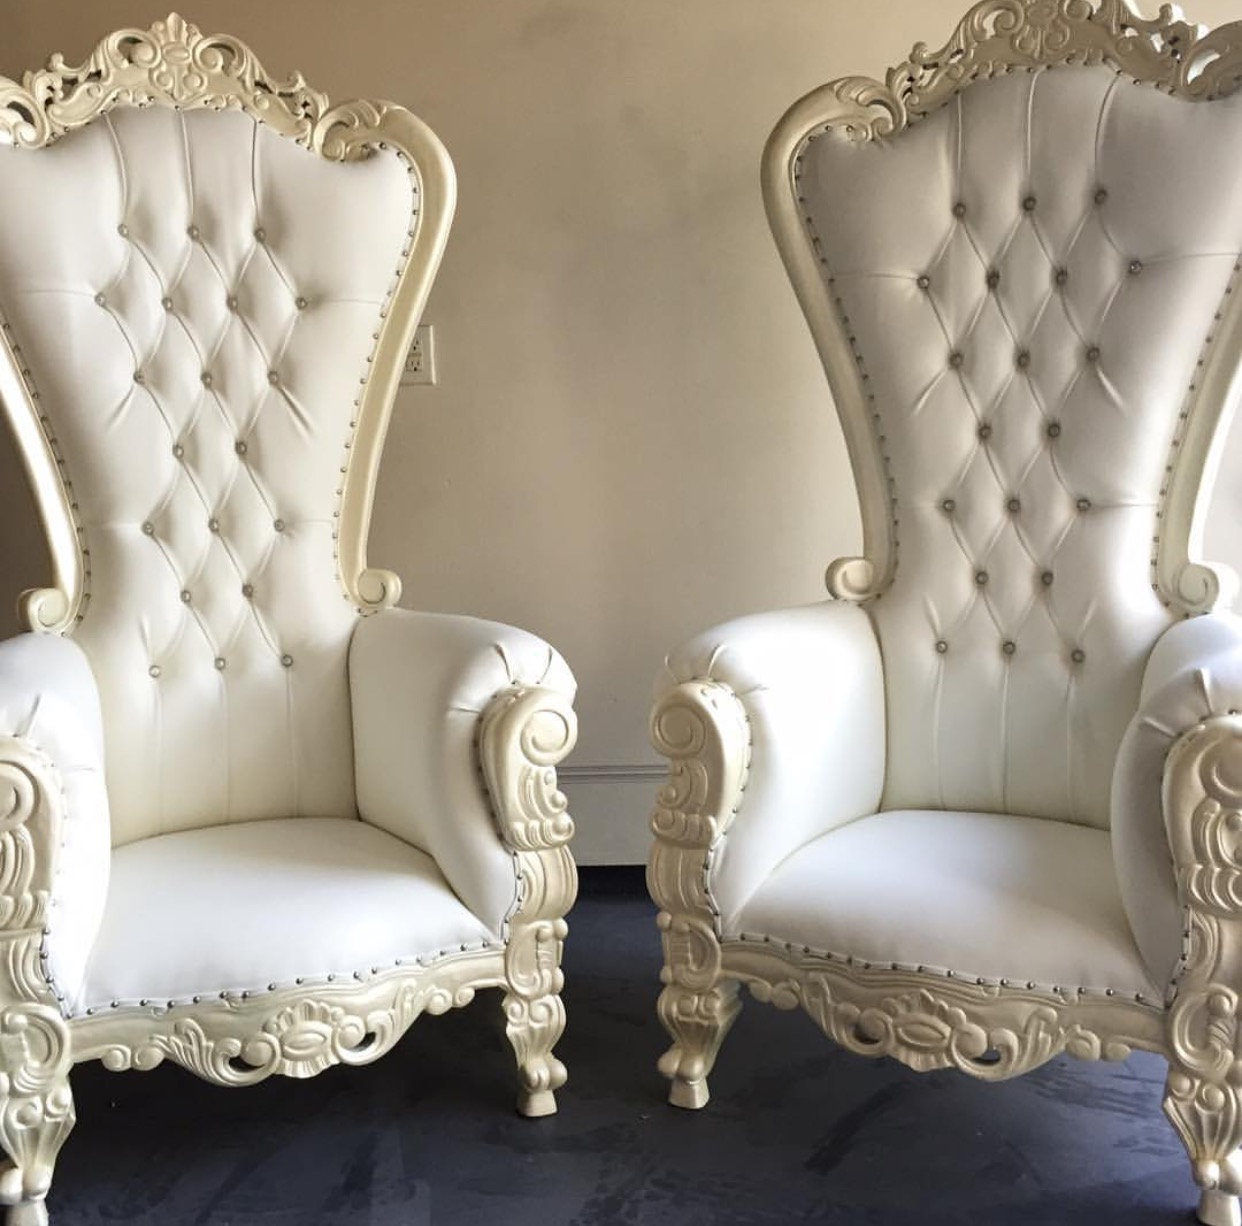 Baby Shower Chair Rentals Nj Ny Throne Chair Rentals New Jersey And New York 39s